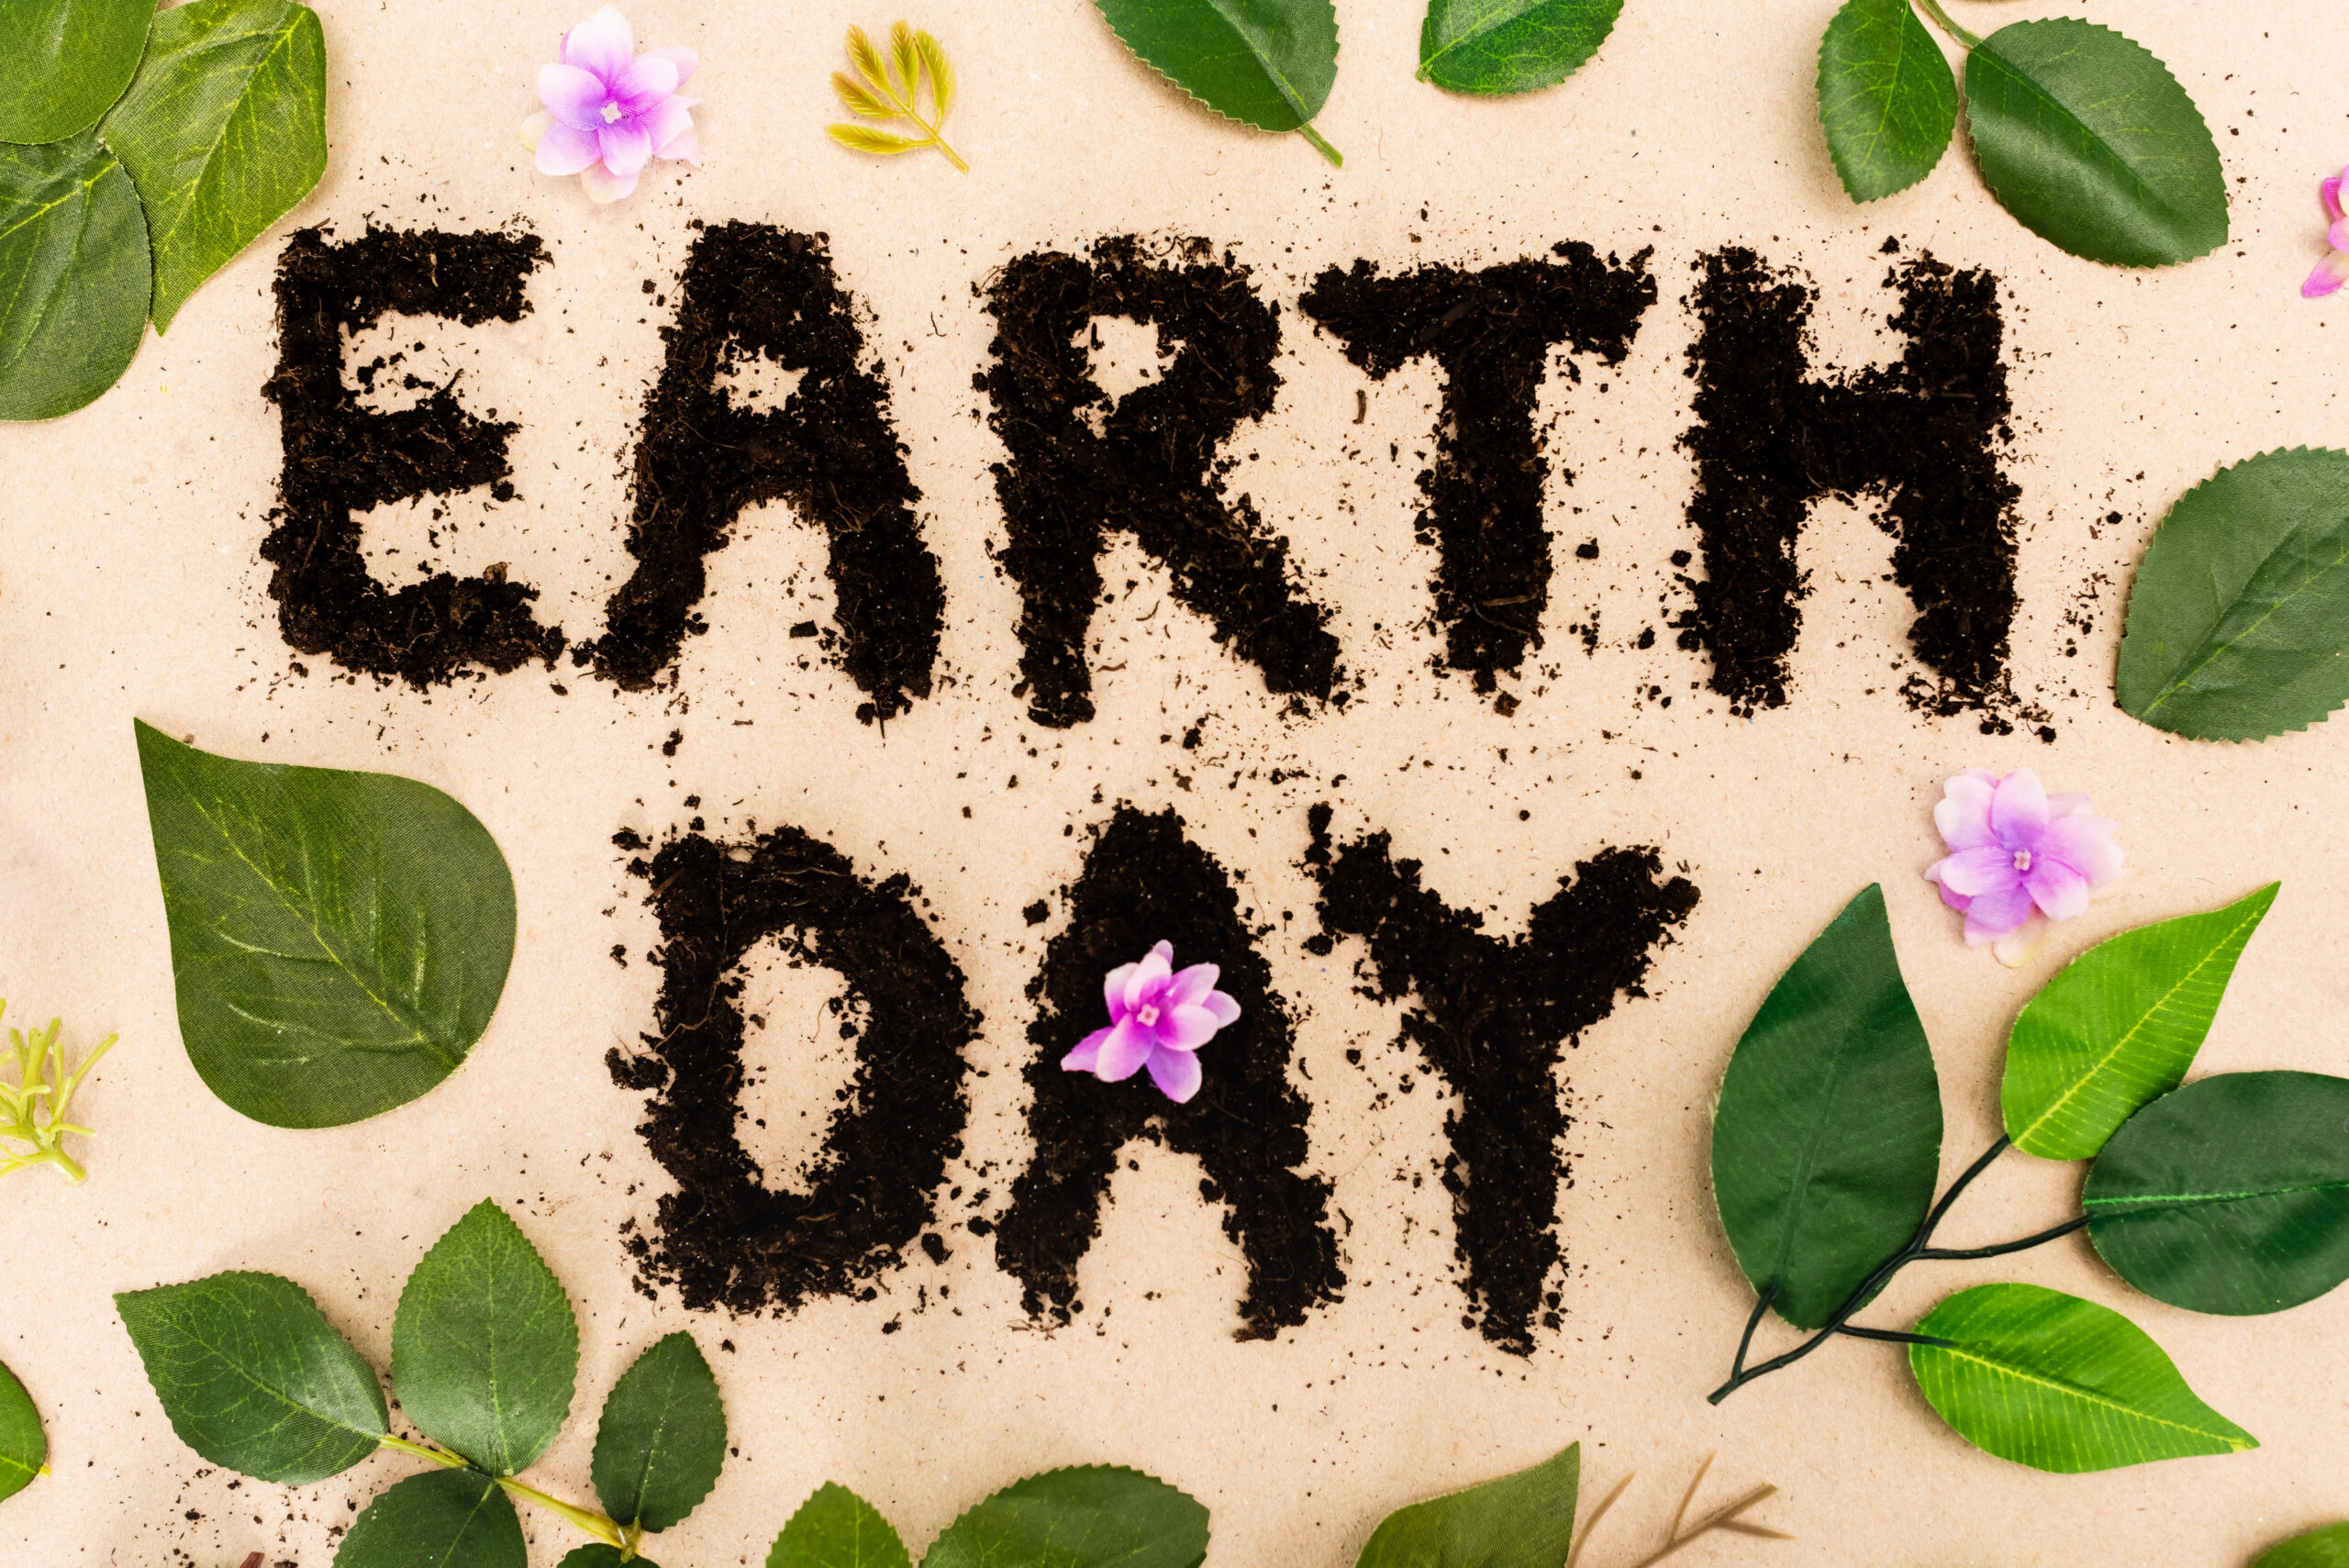 Earth Day: The gap between ambition and action can quickly be bridged